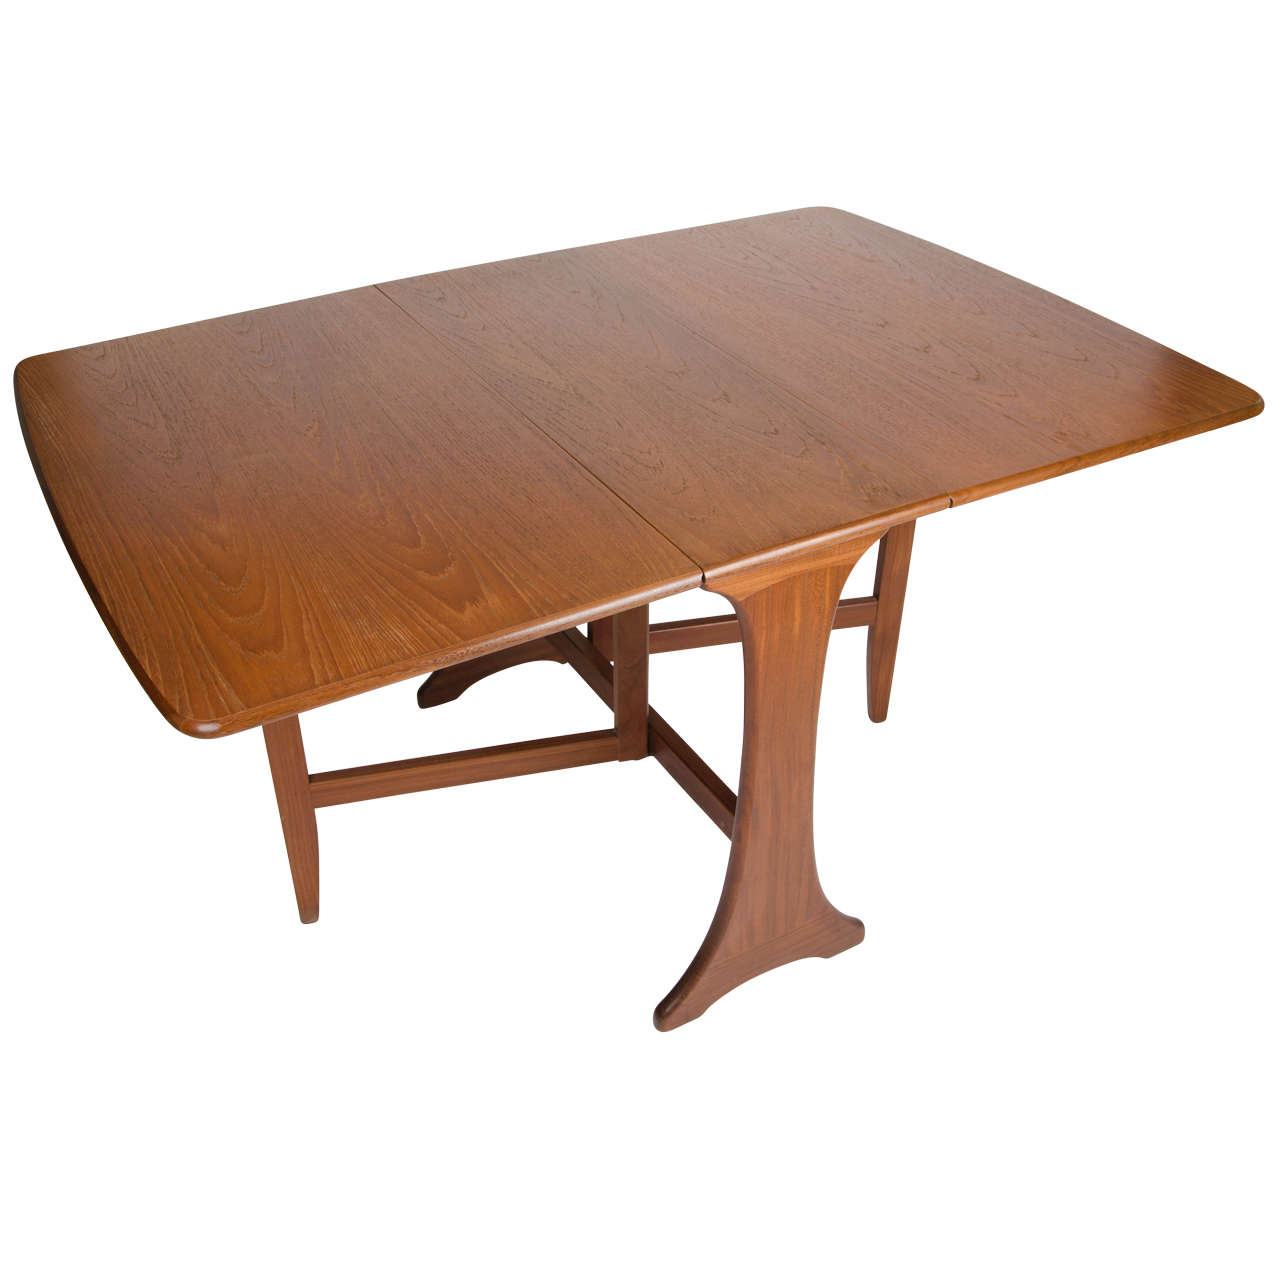 G Plan Mid Century Modern Dining Table Drop Leaf Makers Label Circa 1950s